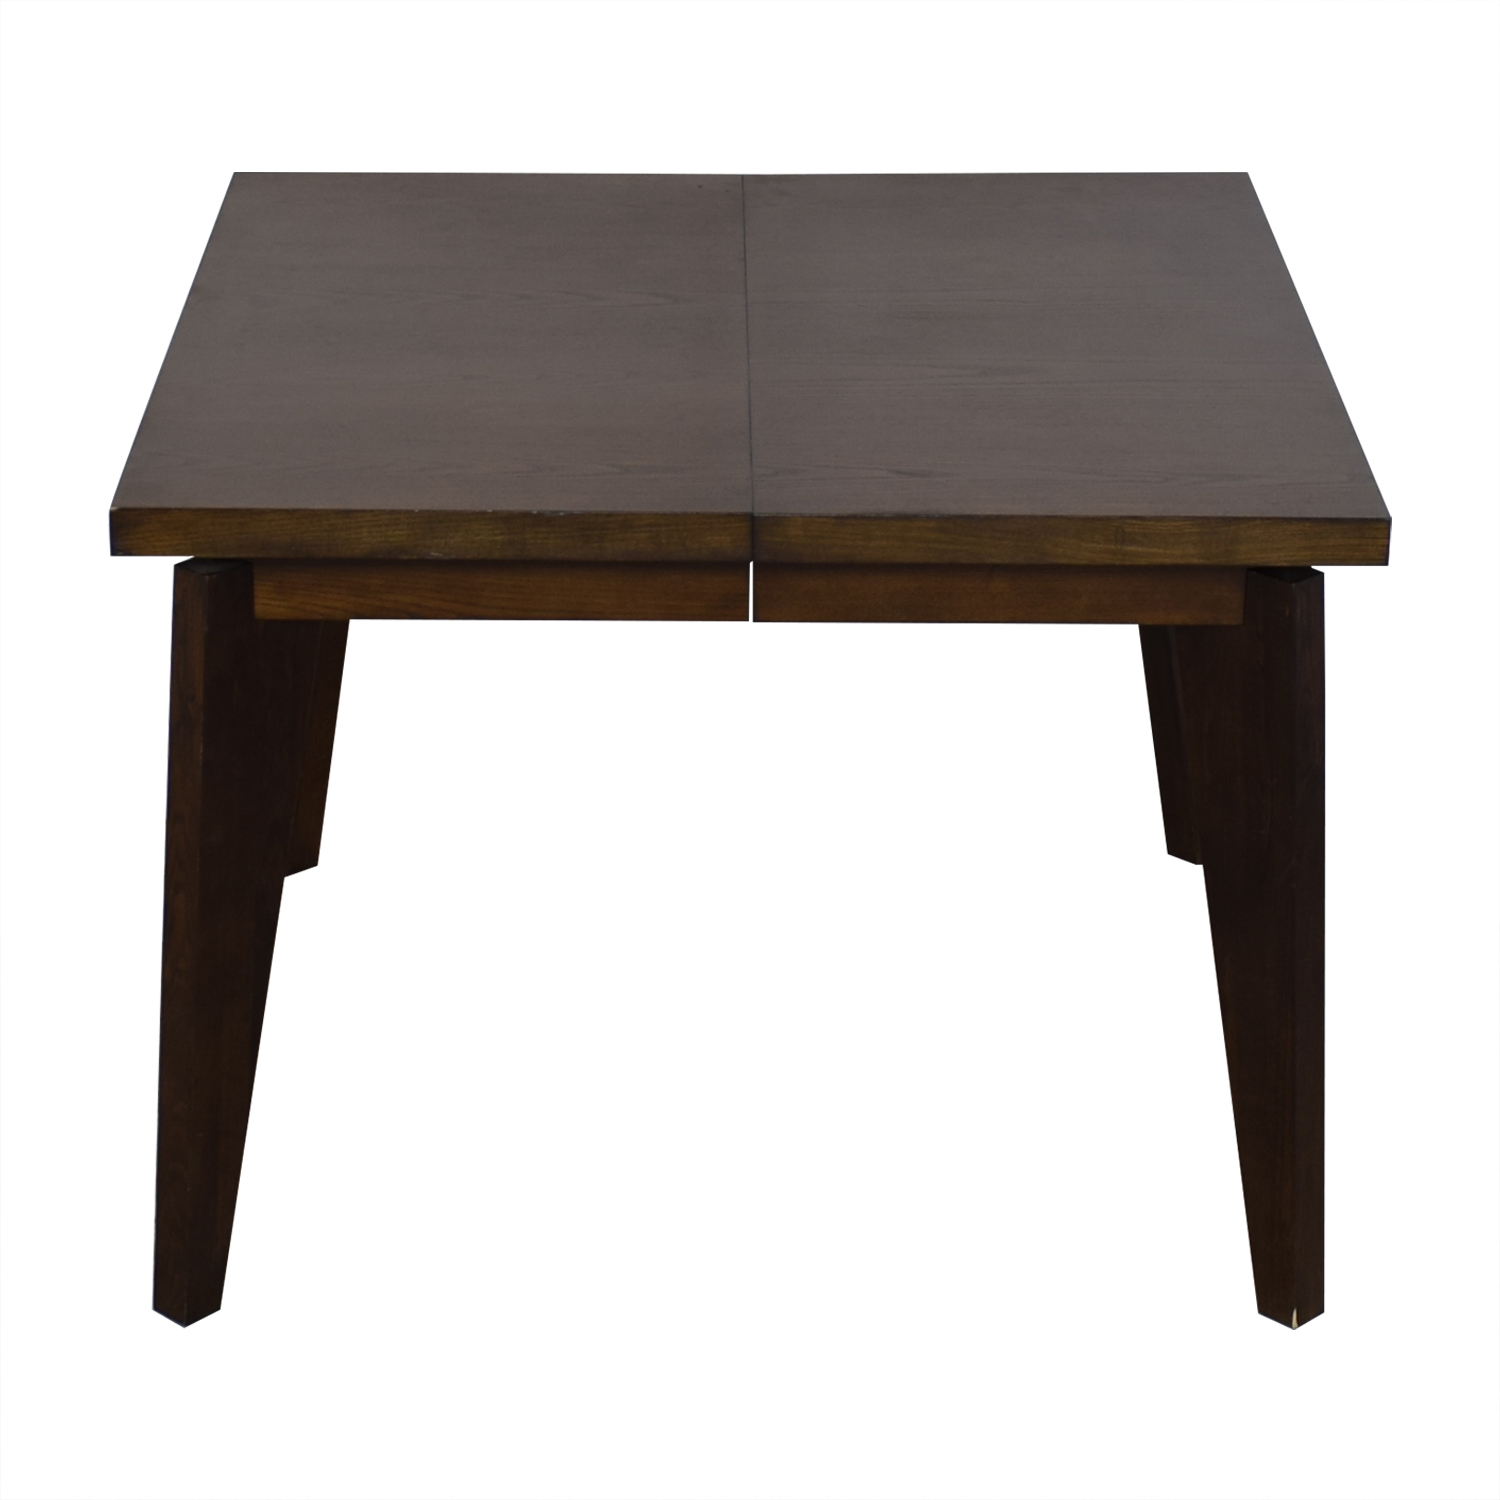 West Elm West Elm Angled-Leg Expandable Table brown